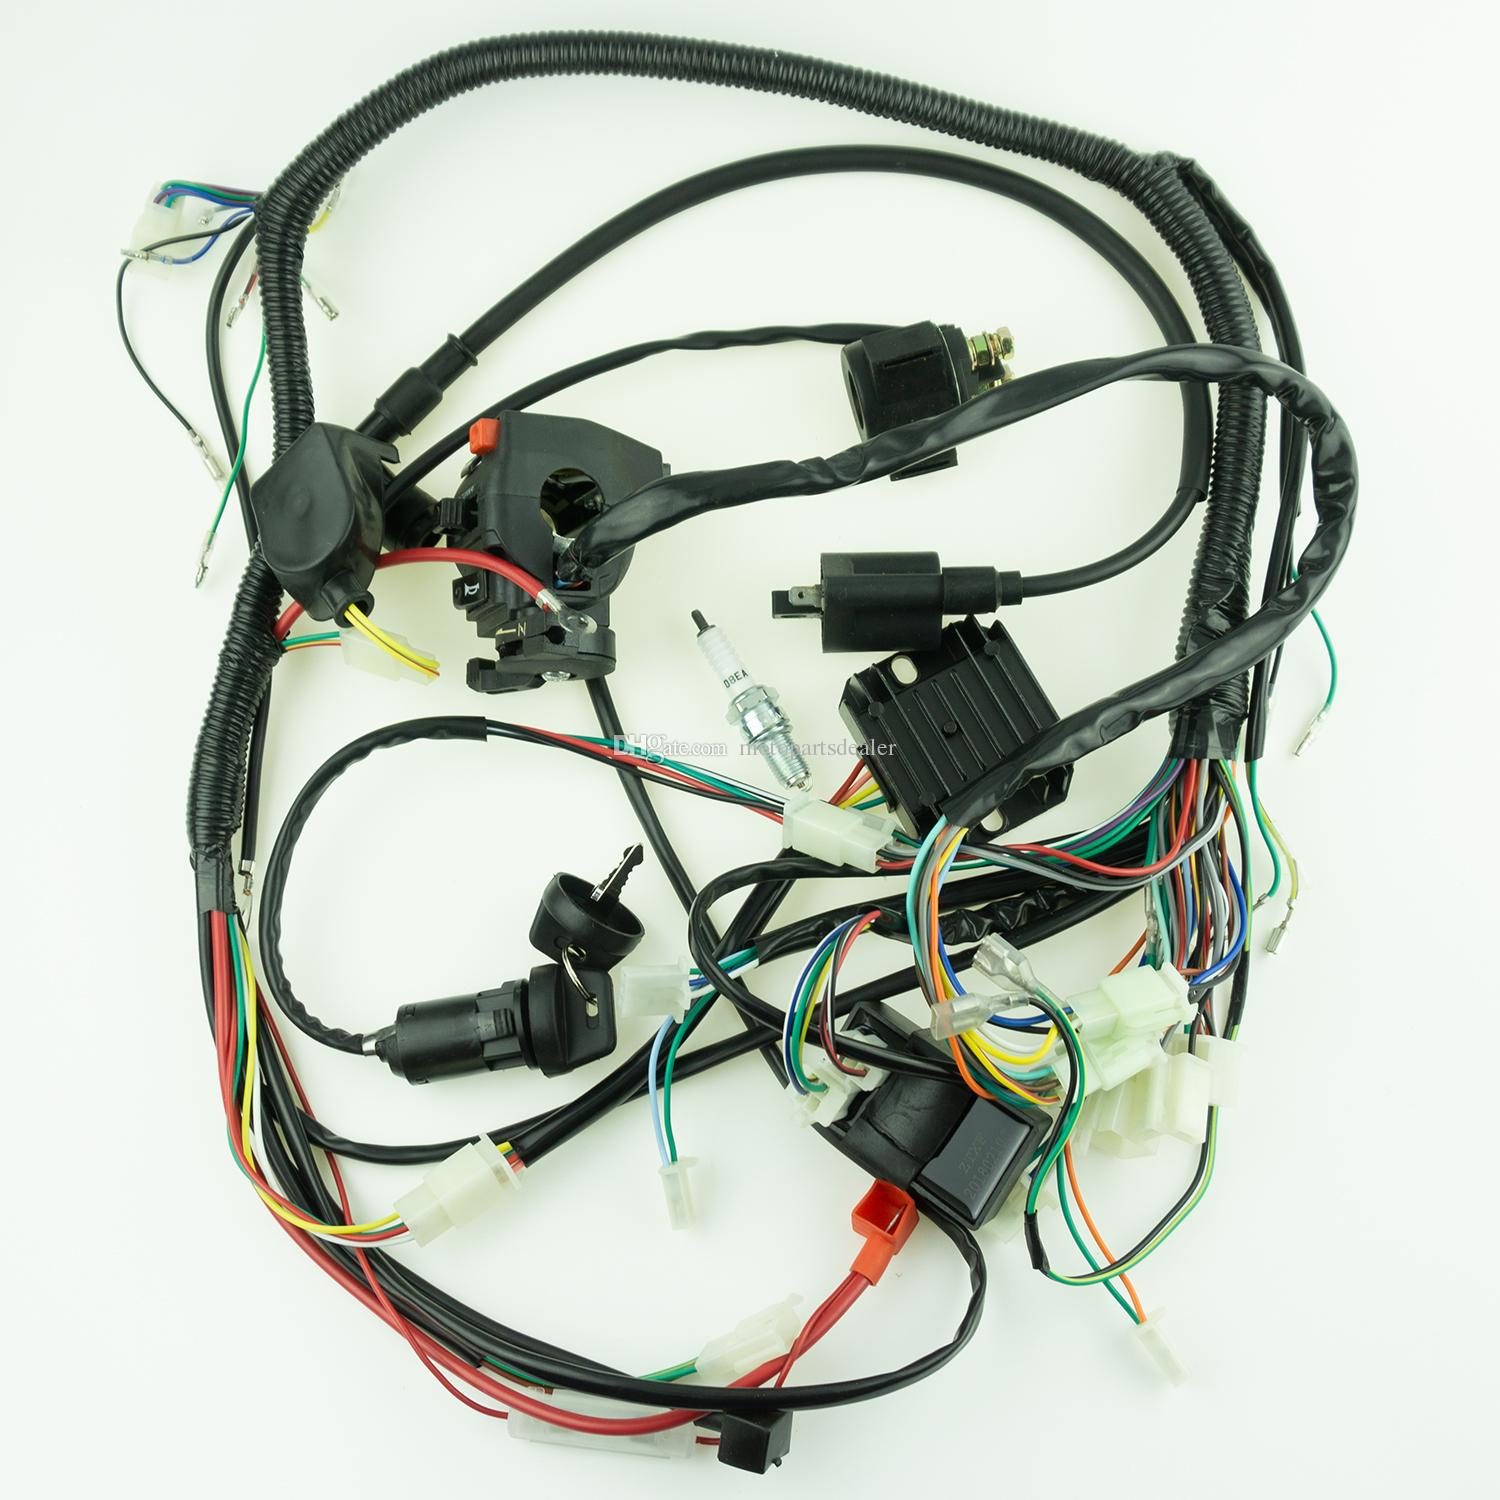 hight resolution of in stock quick ship full wiring harness